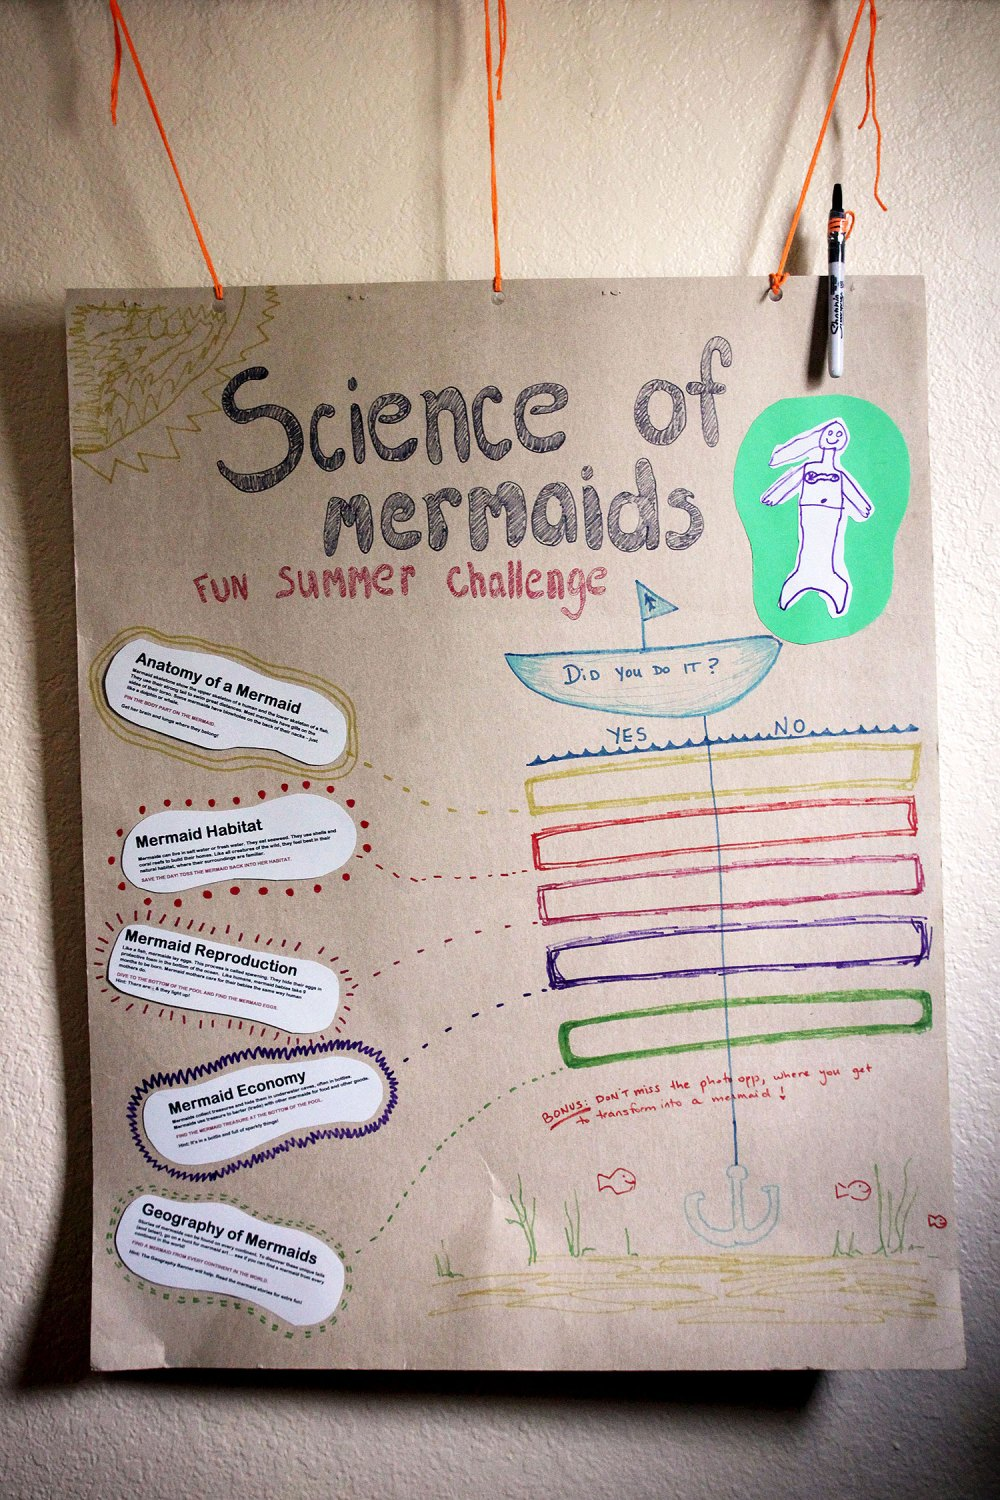 medium resolution of science of mermaids birthday party challenge checklist